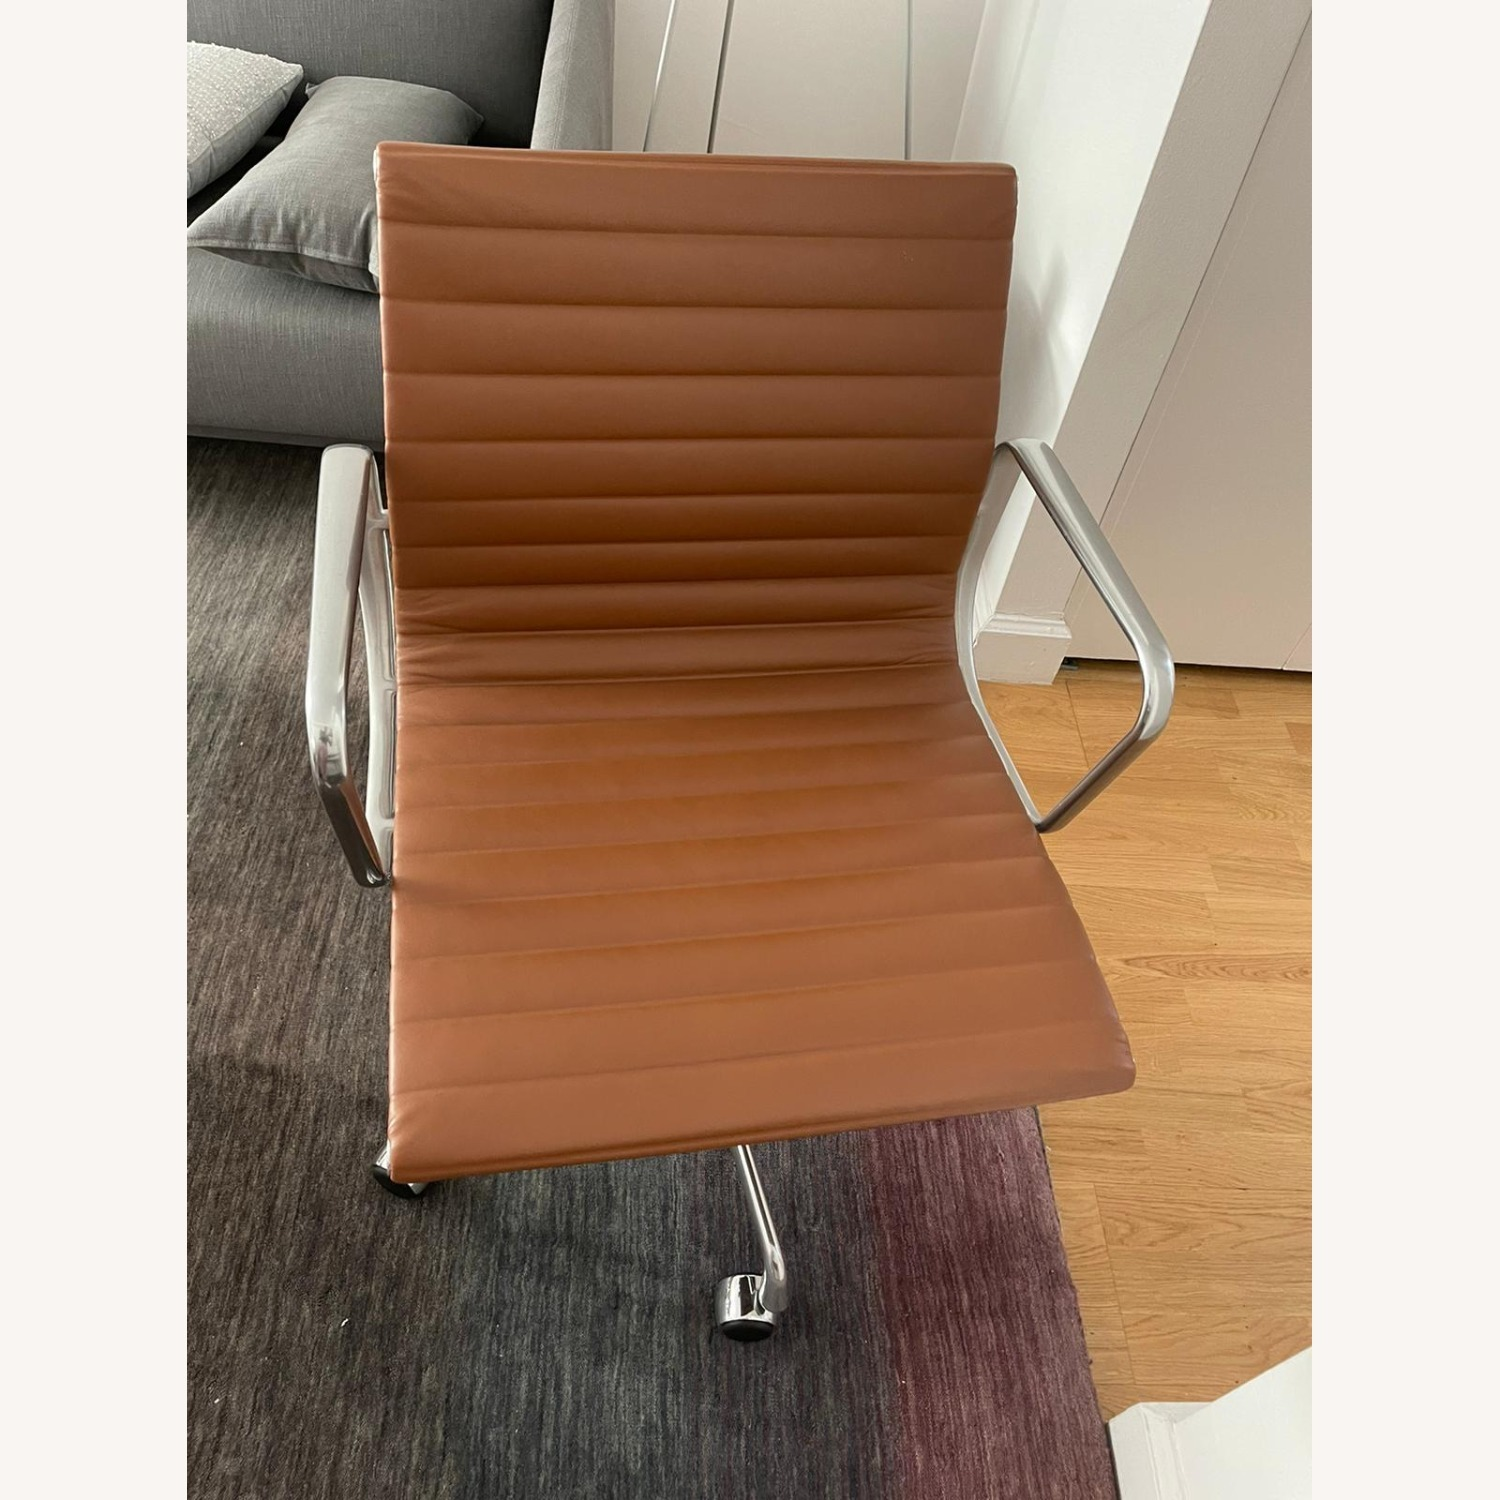 Design Within Reach Aluminum Chair - image-1